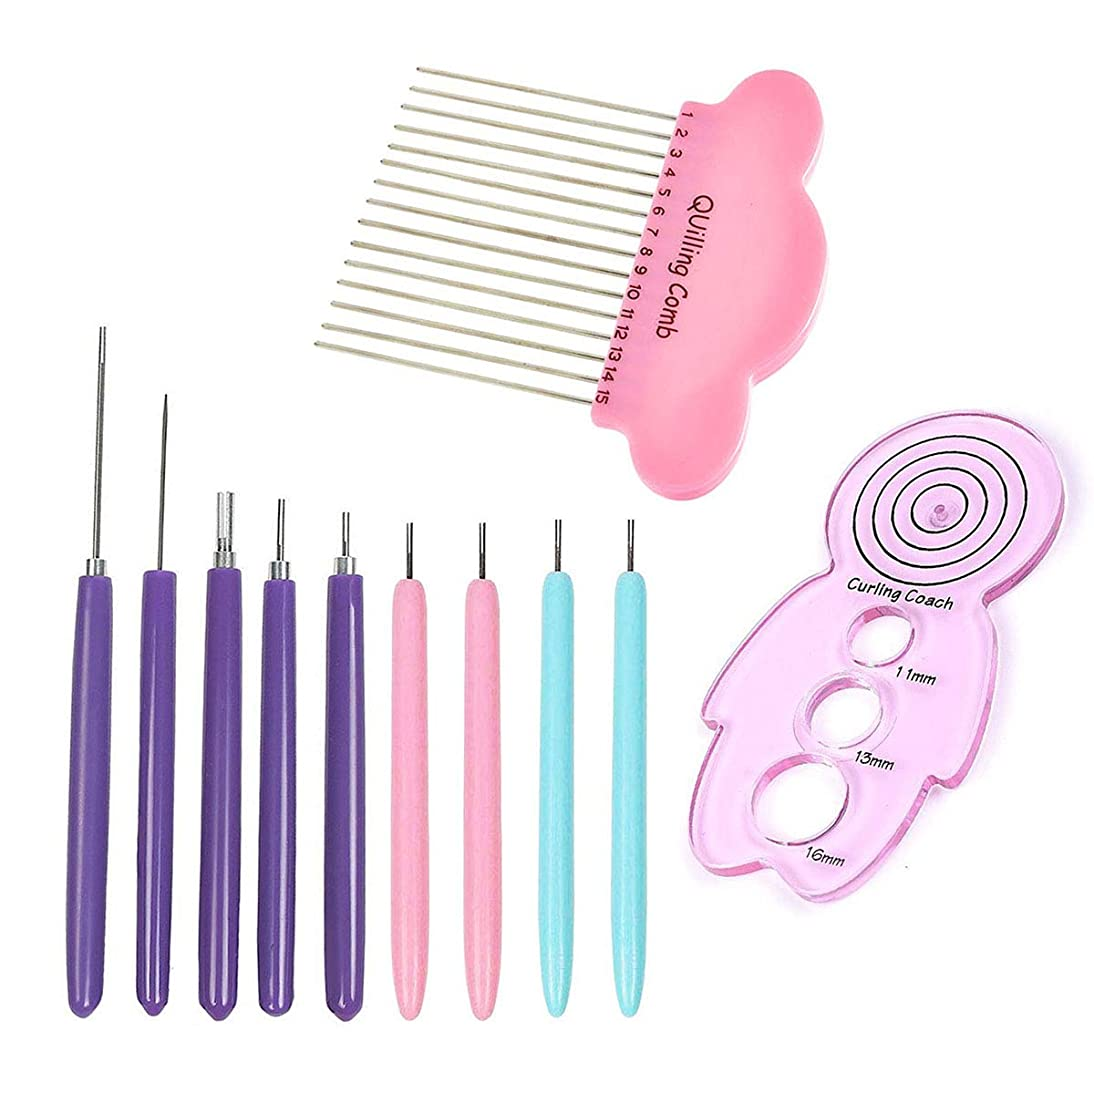 9 Pcs Paper Quilling Slotted Tools and 1Pcs Quilling Curling Coach and 1Pcs Paper Quilling Comb Tool